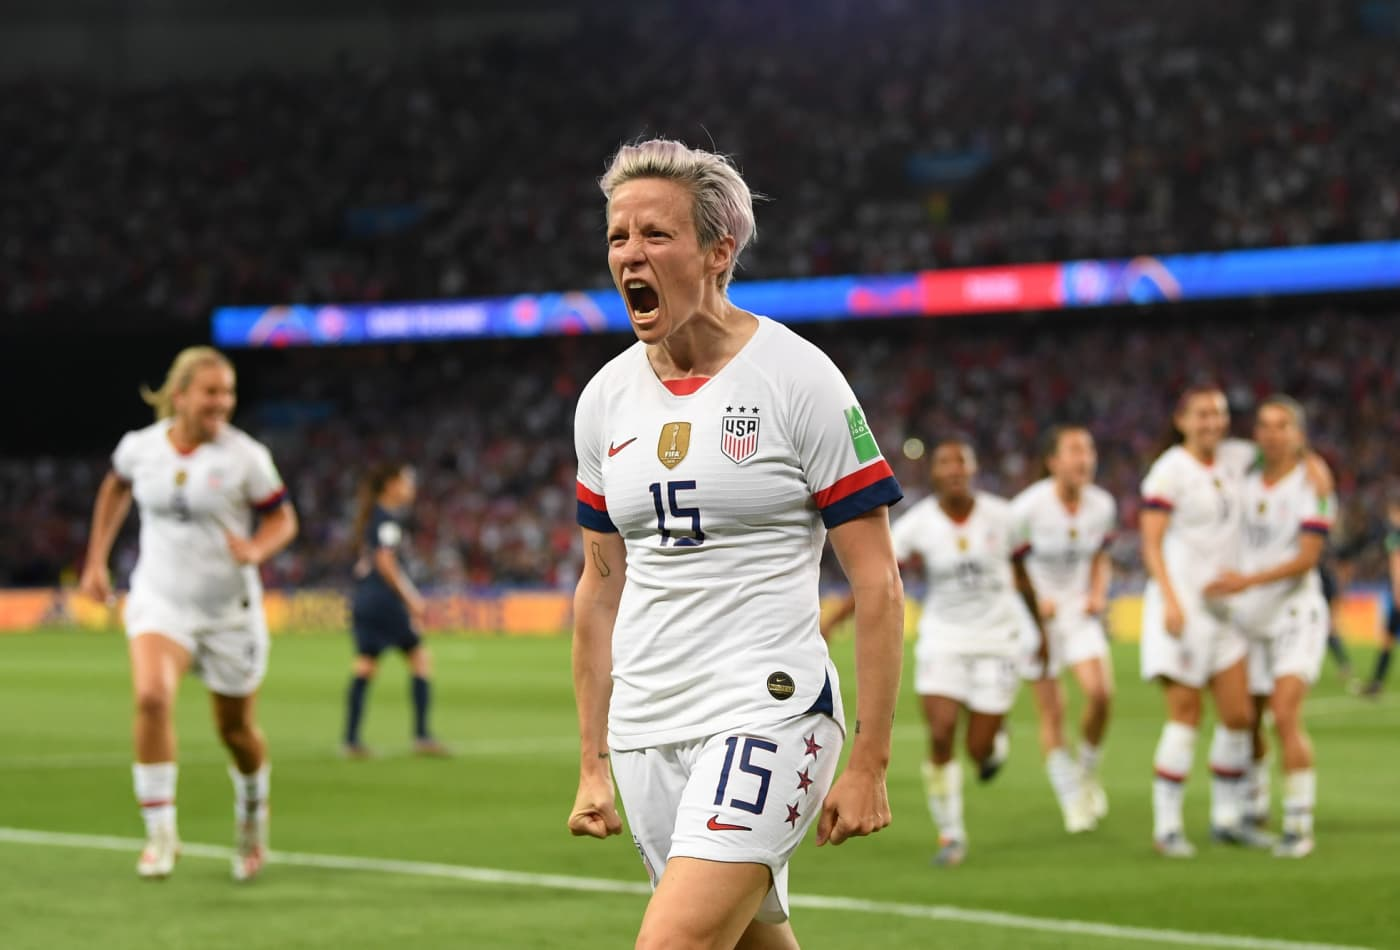 megan rapinoe 15 of the united states celebrates scoring during the 2019 fifa women s world cup france quarter final match between france and the united